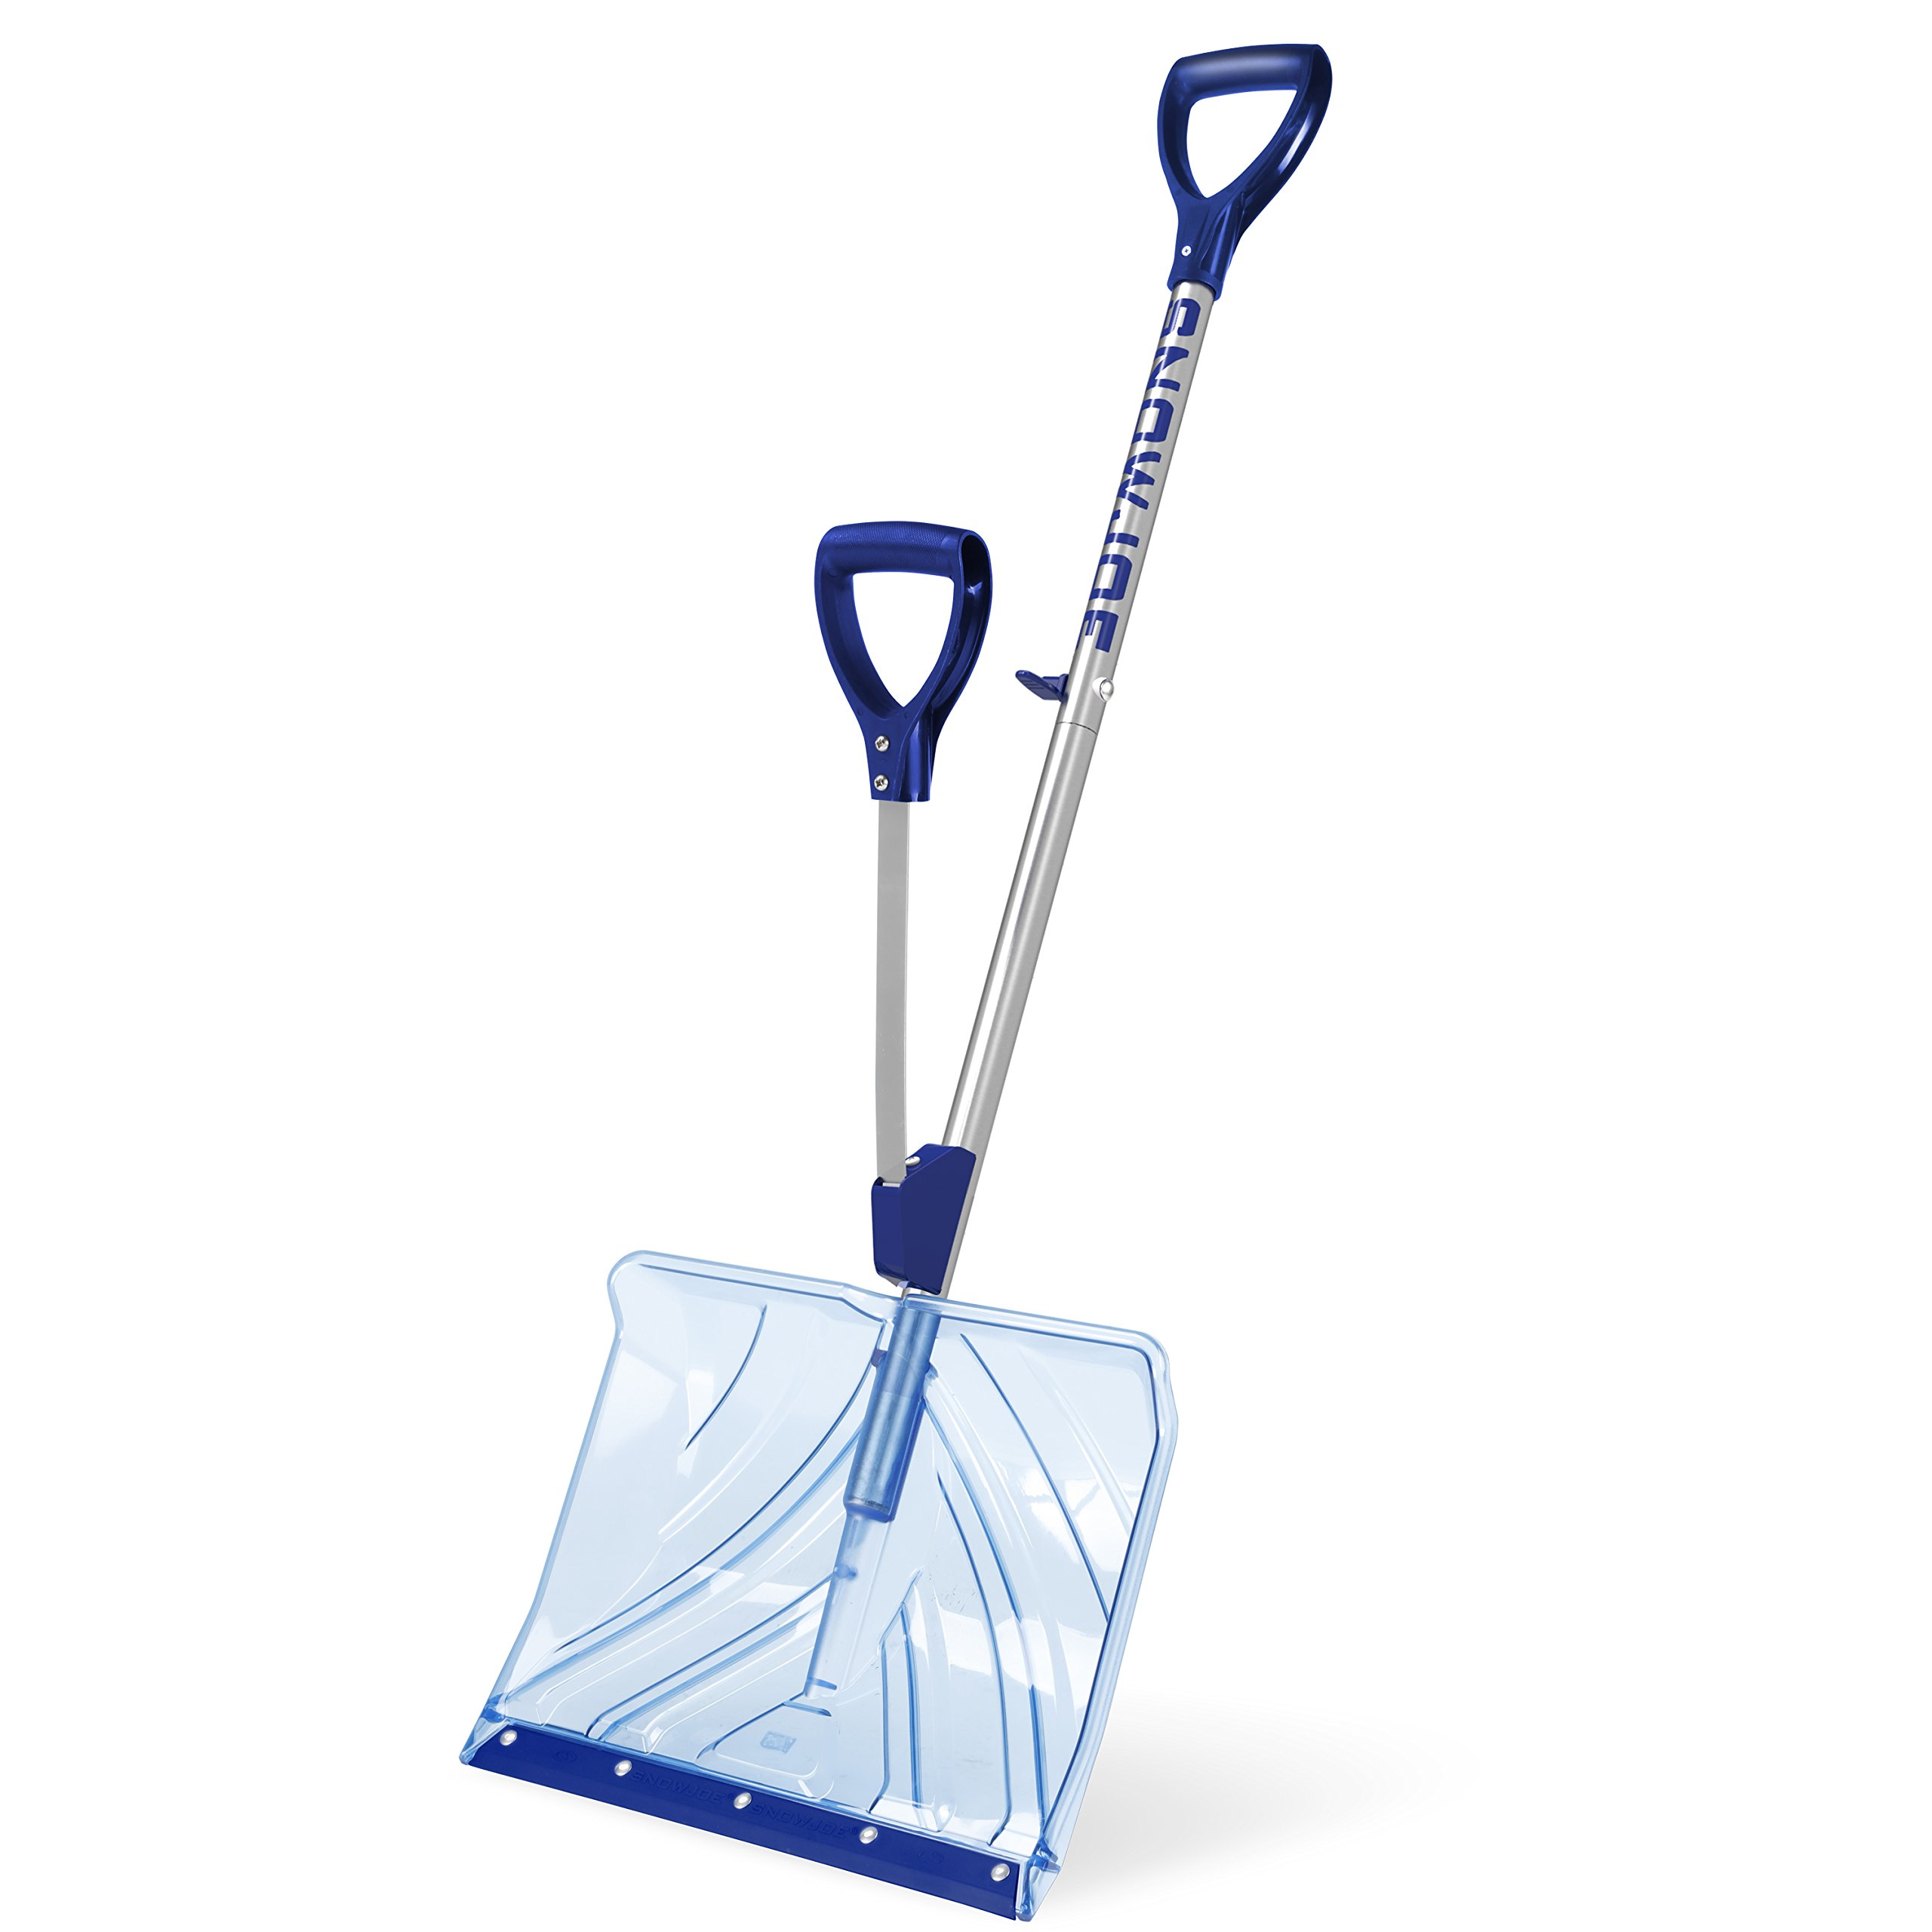 Snow Joe Shovelution SJ-SHLV02 18-IN Strain-Reducing Indestructible Shatter Resistant Polycarbonate Snow Shovel w/Spring Assisted Handle by Snow Joe